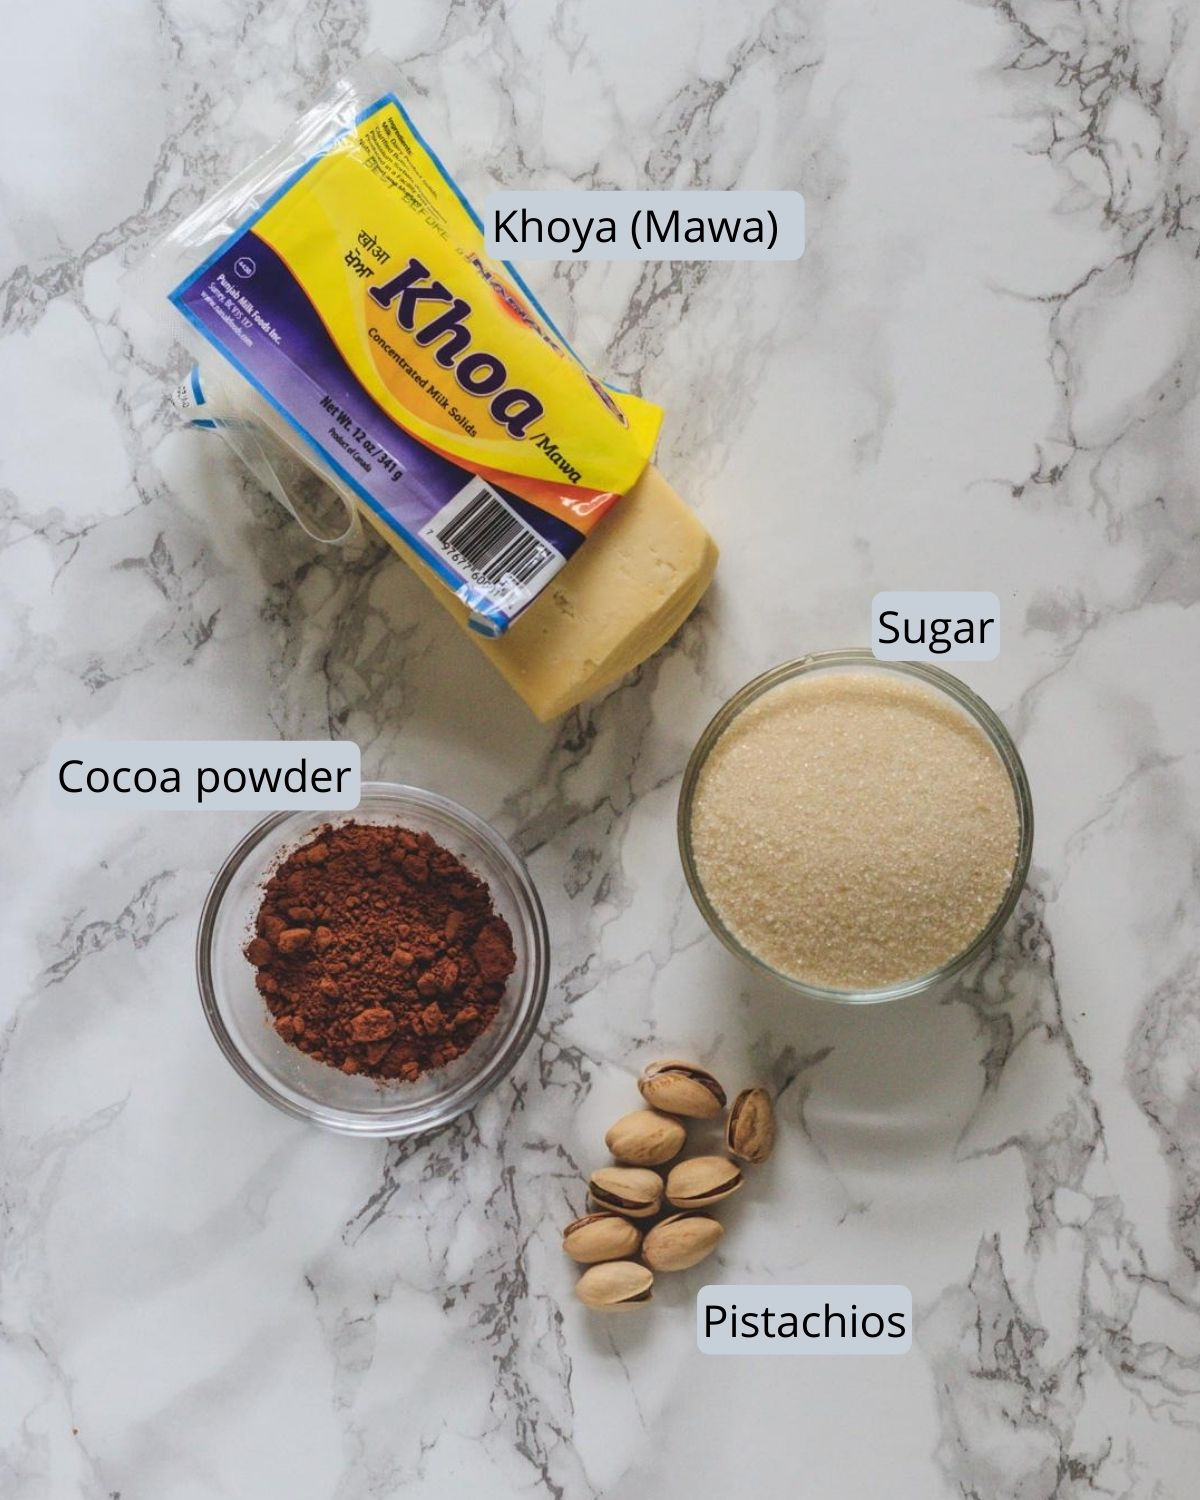 image of ingredients used in chocolate peda includes khoya, sugar, cocoa powder and pistachios